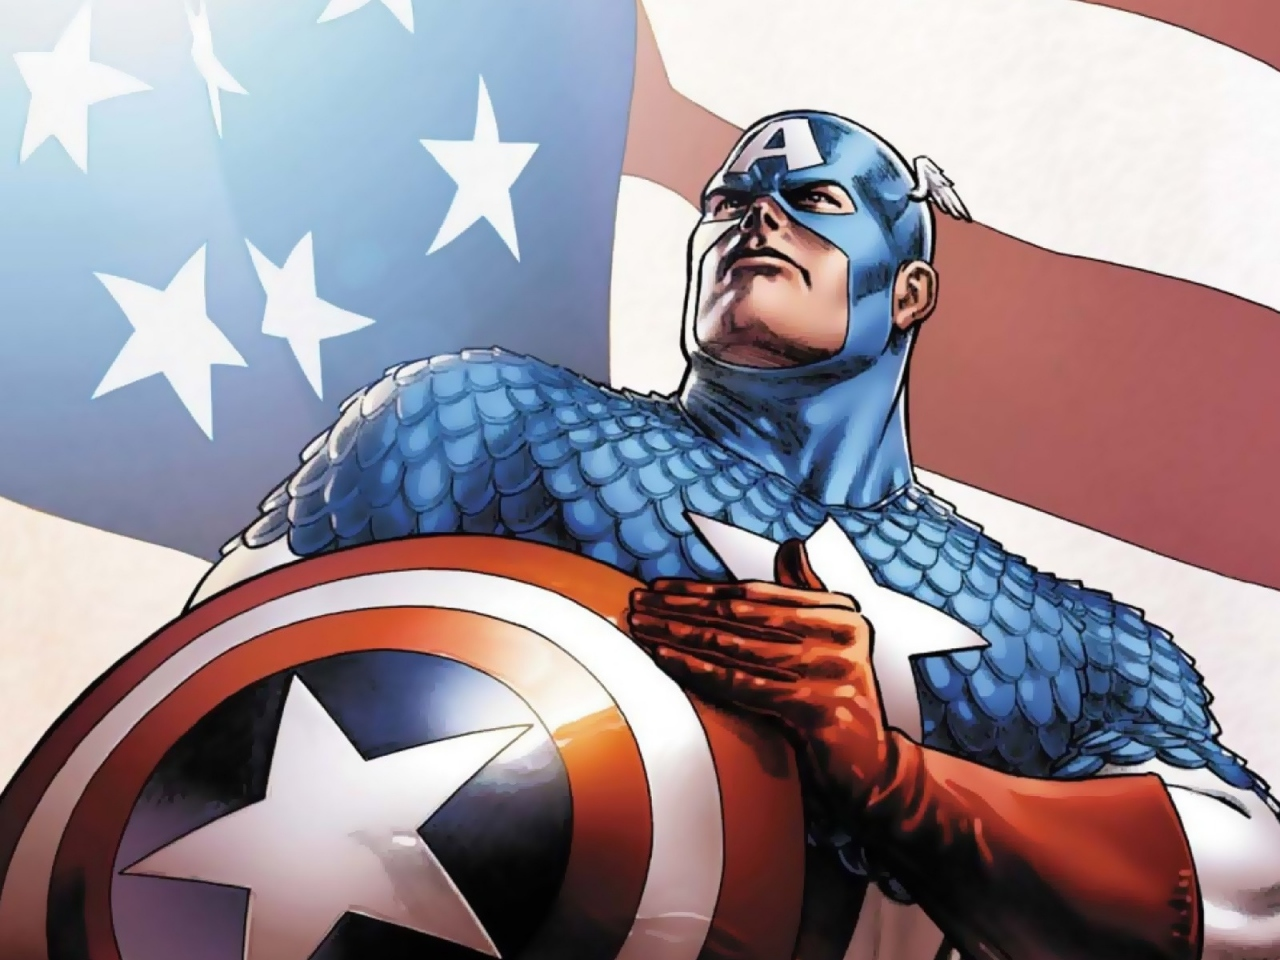 Captain America background image Captain America wallpapers 1280x960